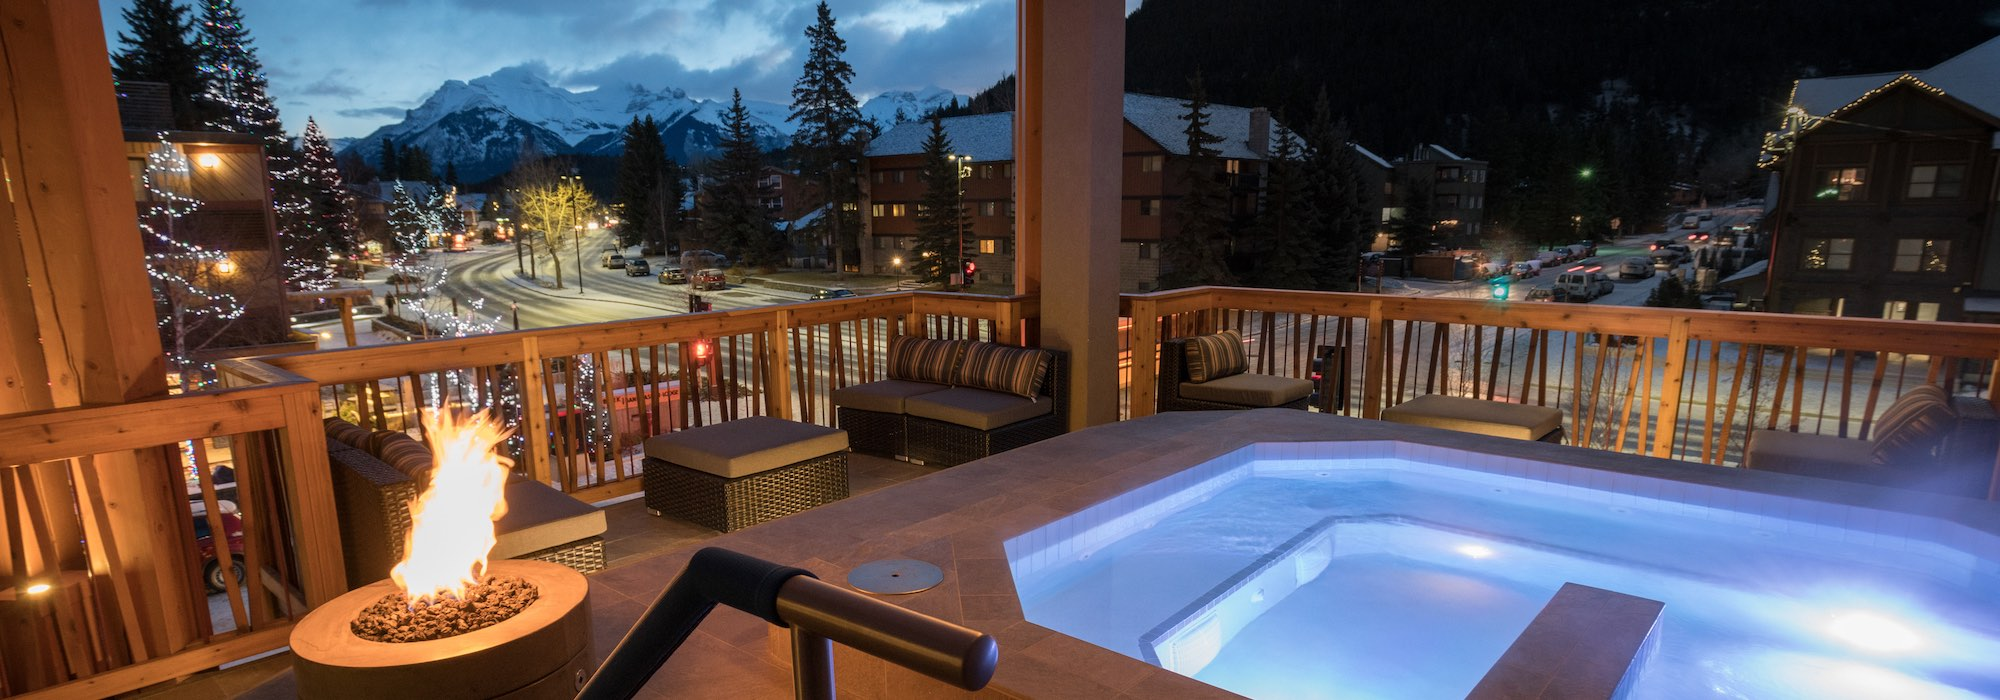 Rooftop hot pool at the Moose Hotel & Suites, Banff National Park.